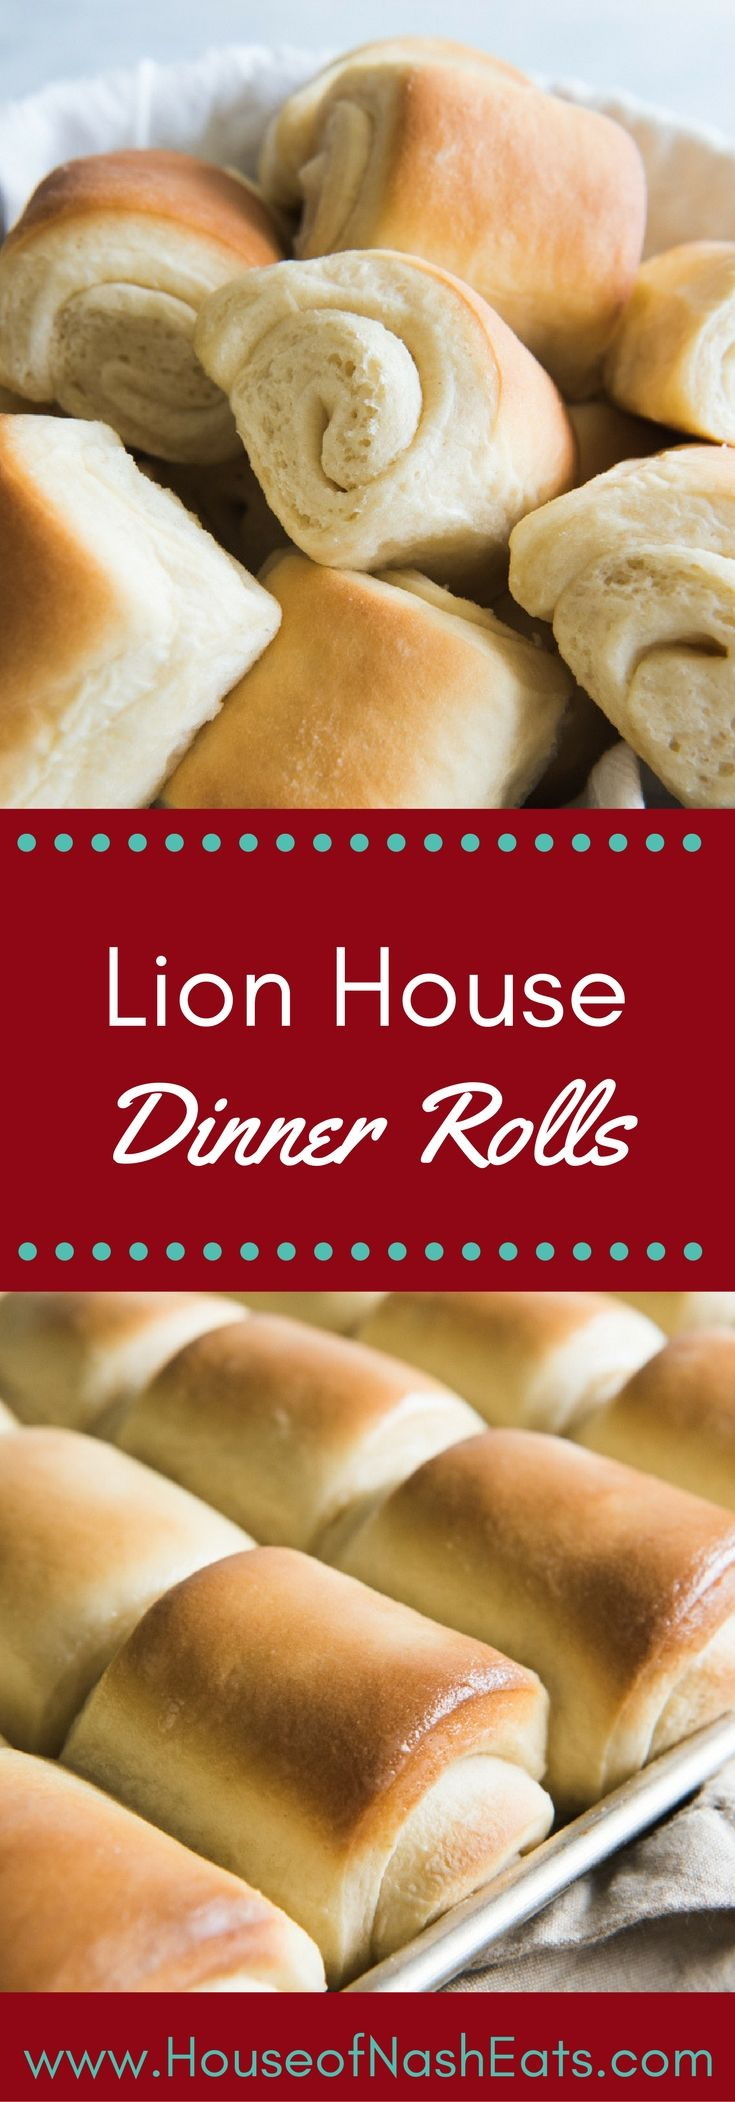 Every Thanksgiving, Christmas, and Easter, these soft, buttery, homemade Lion House Dinner Rolls grace our table. Of all the roll recipes I have tried (and loved), these are the ones that get made most often at our house, and for good reason. They really are the best! #dinnerrolls #thanksgiving #christmas #easter #rolls #bread